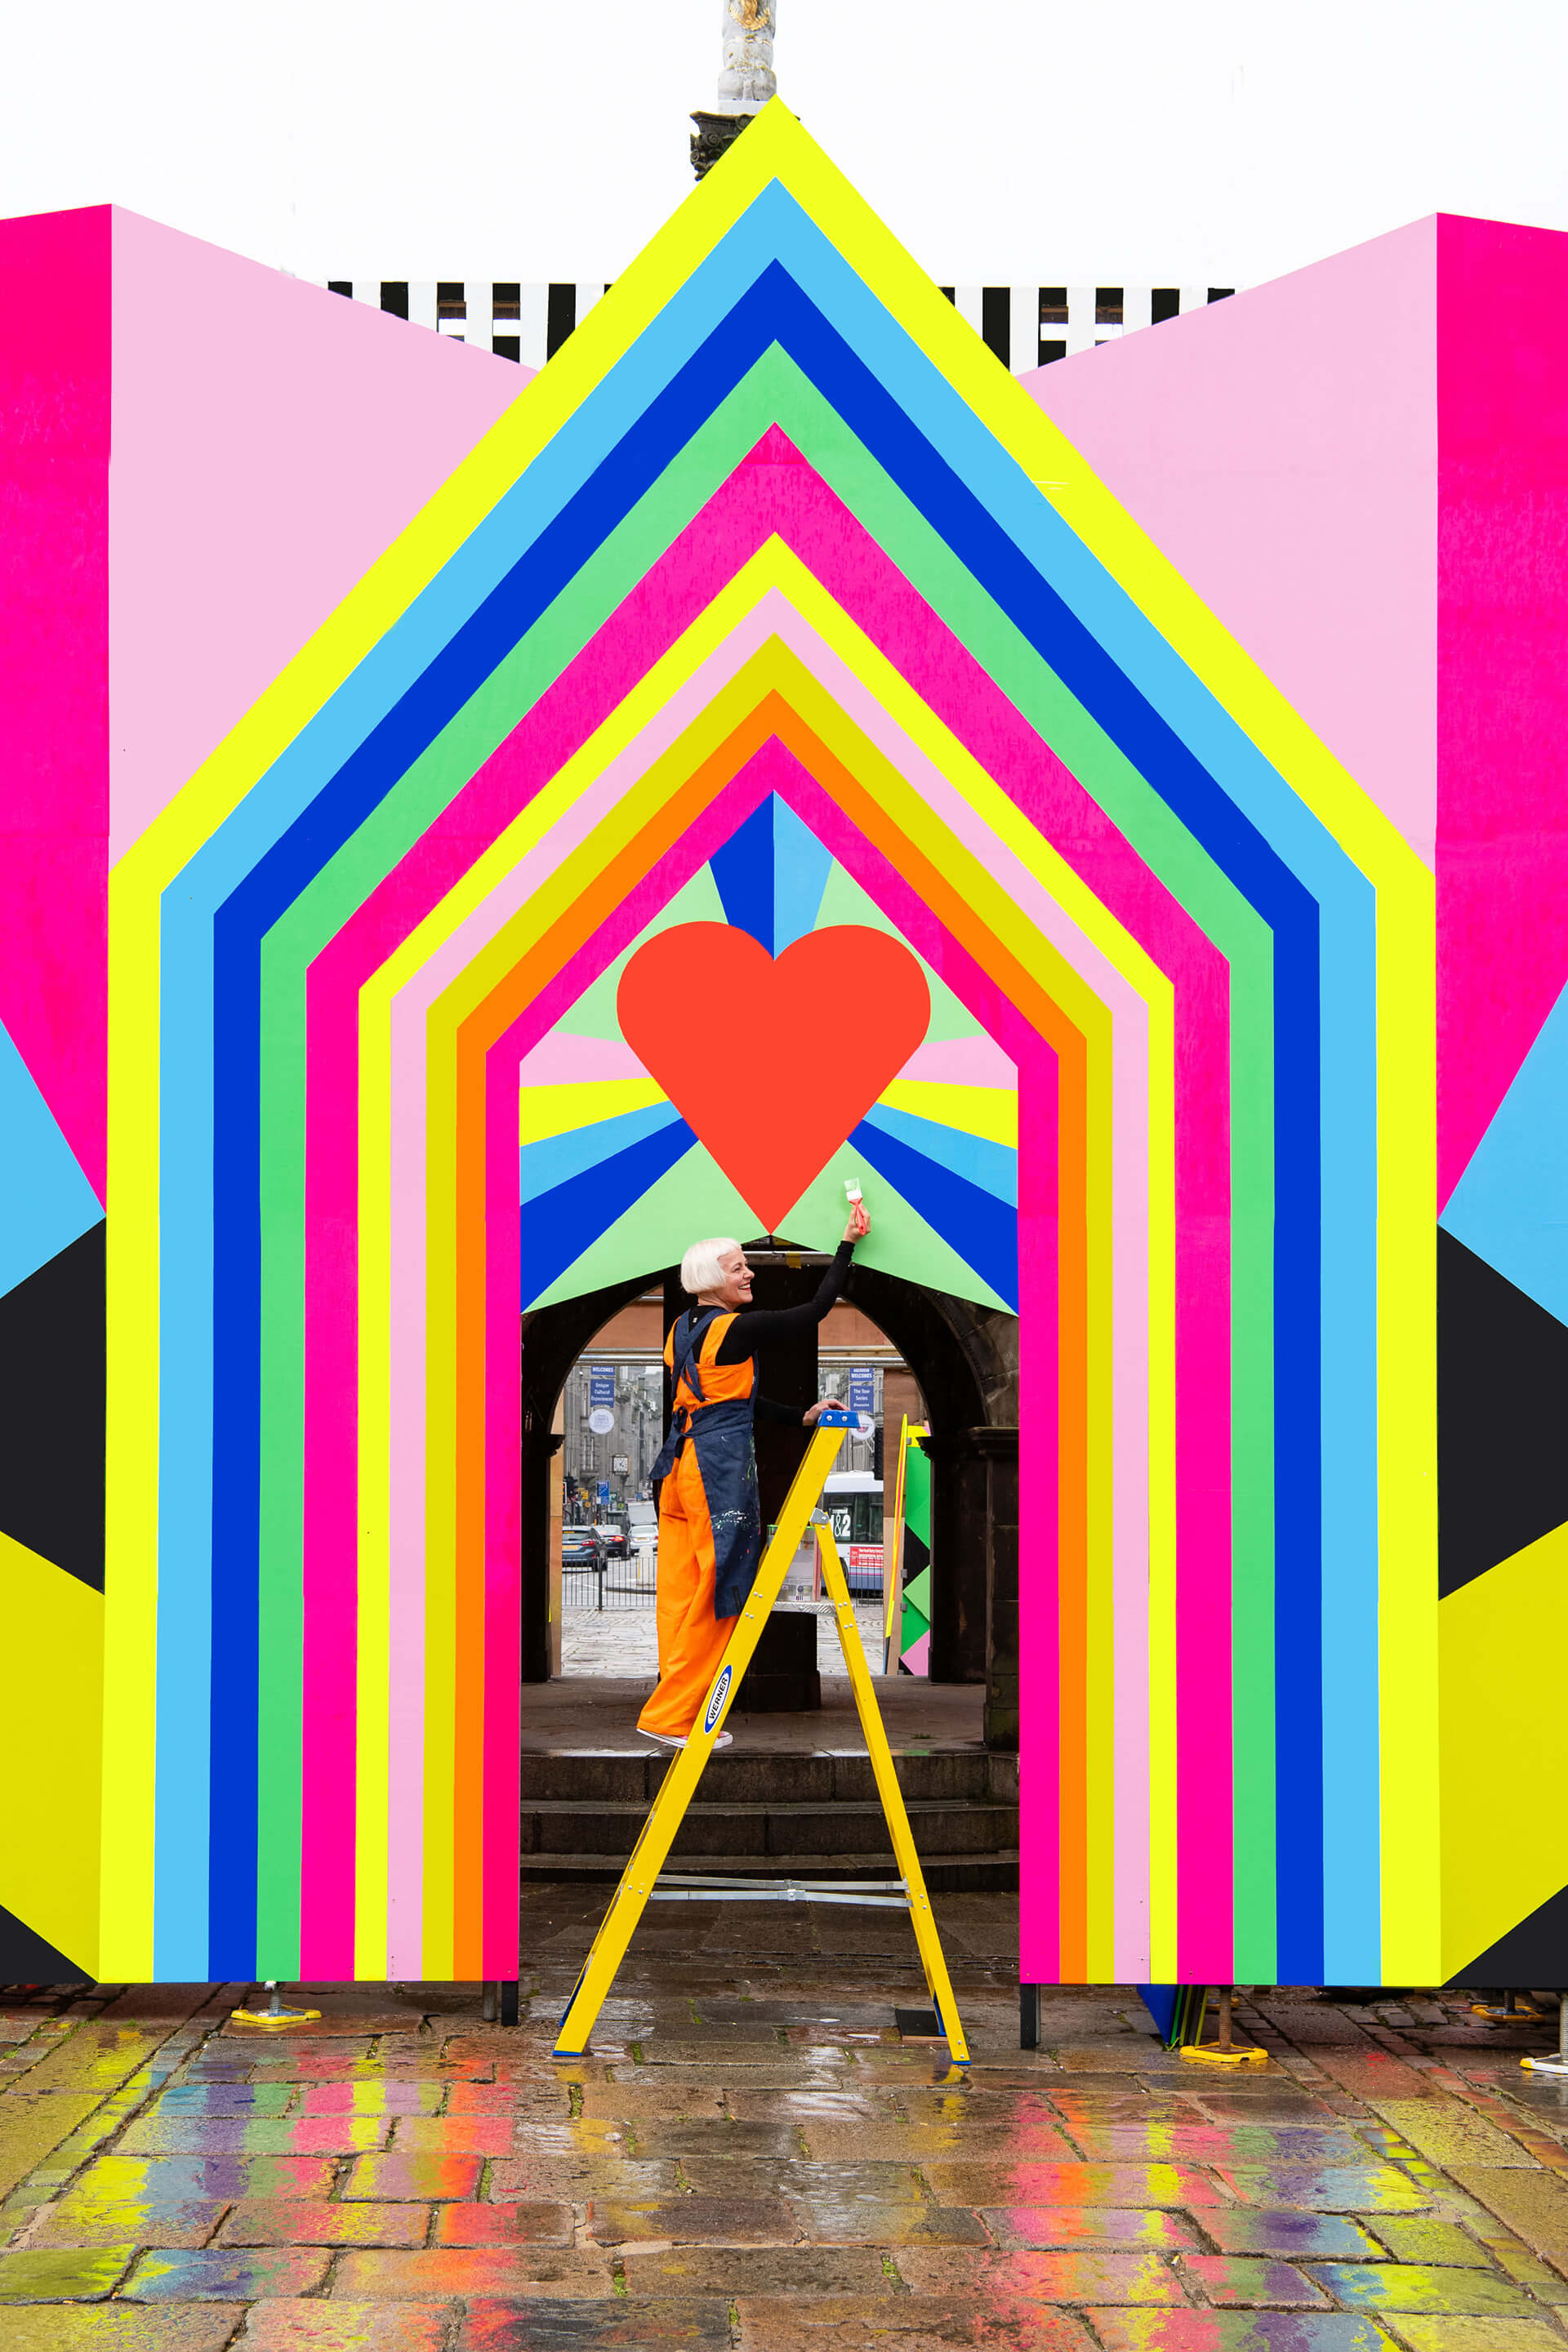 Myerscough painting at her installation Love at First Sight in Aberdeen, which she dedicated to her parents | Morag Myerscough | Women in Design 2020+ | STIRworld